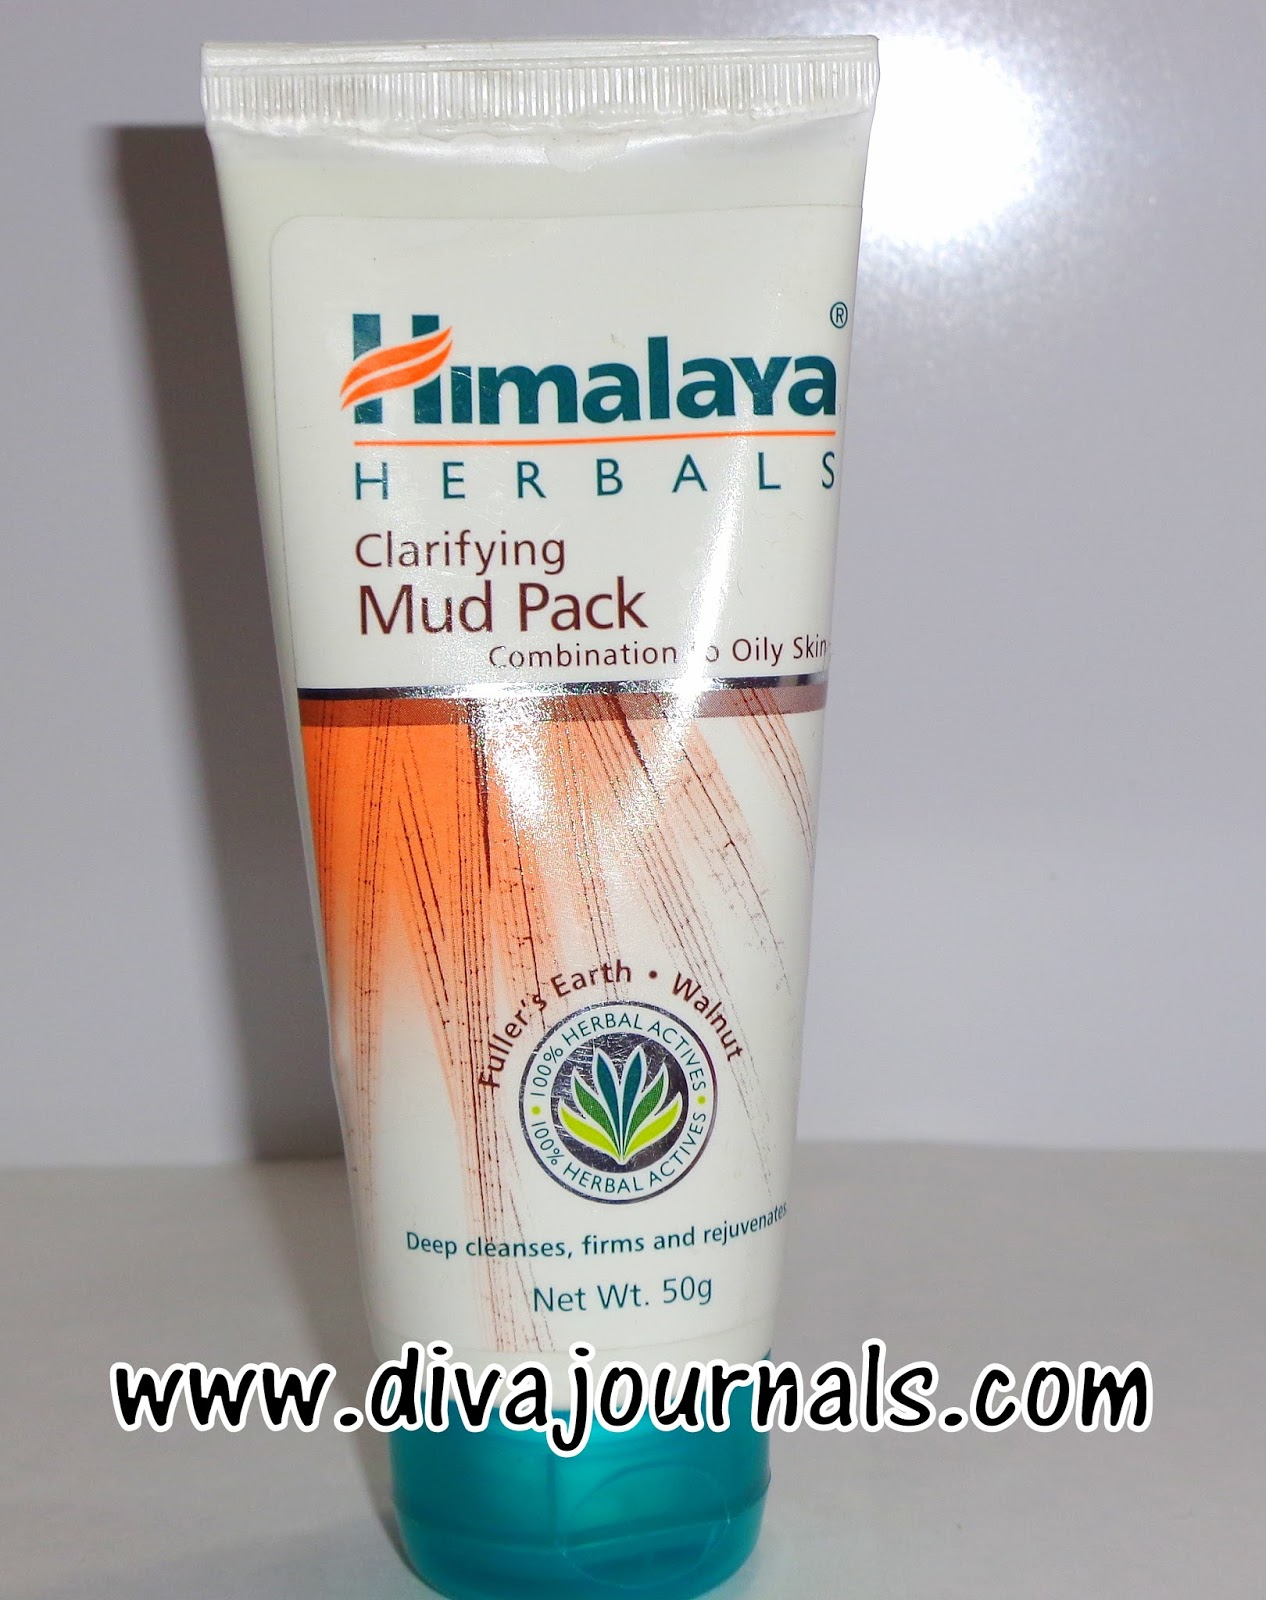 Himalaya Herbals Clarifying Mud Pack Review